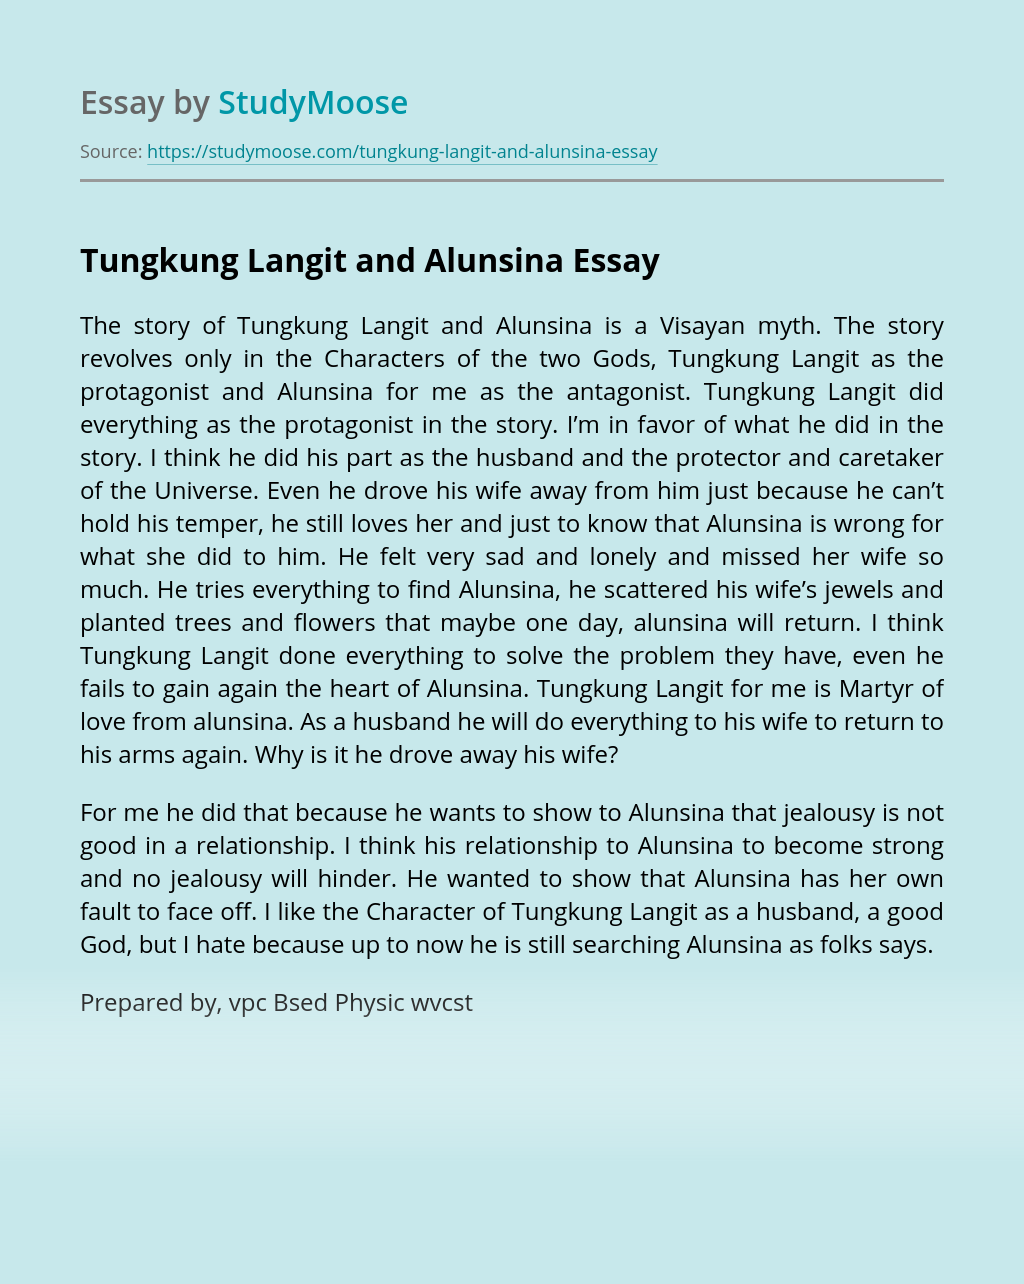 Tungkung Langit and Alunsina